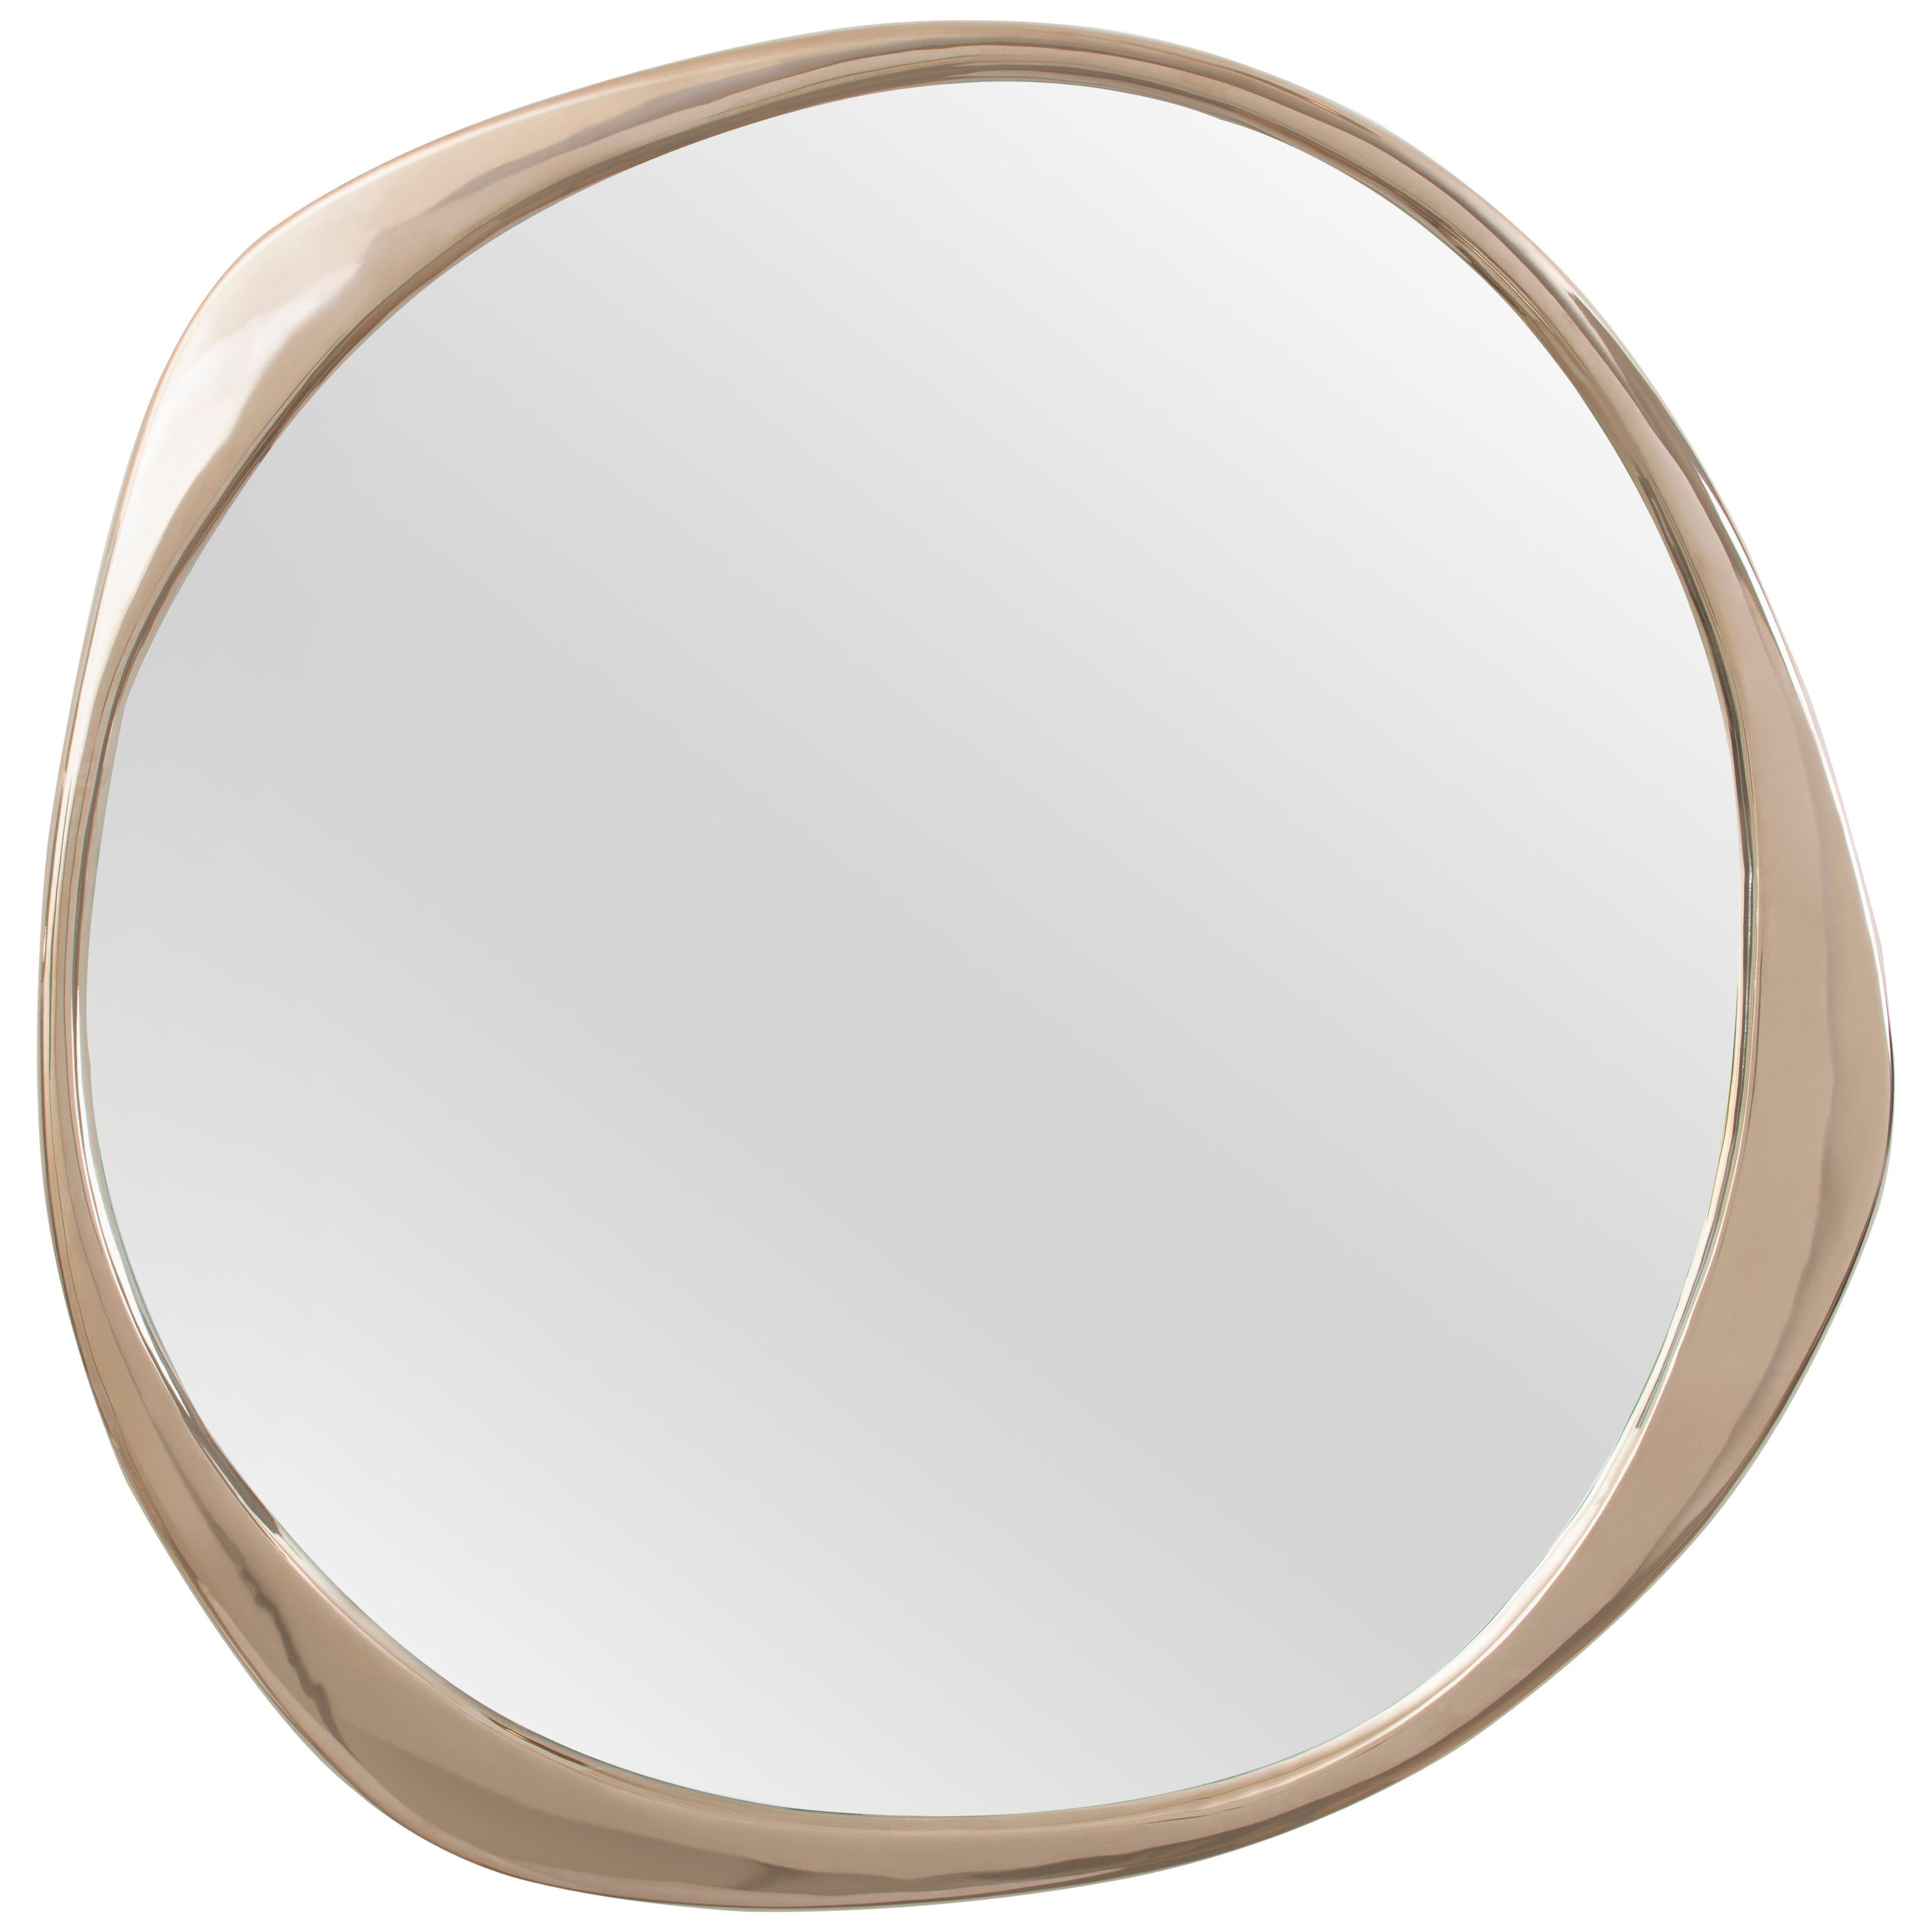 A. Cepa Wall Mirror Small in Polished Bronze